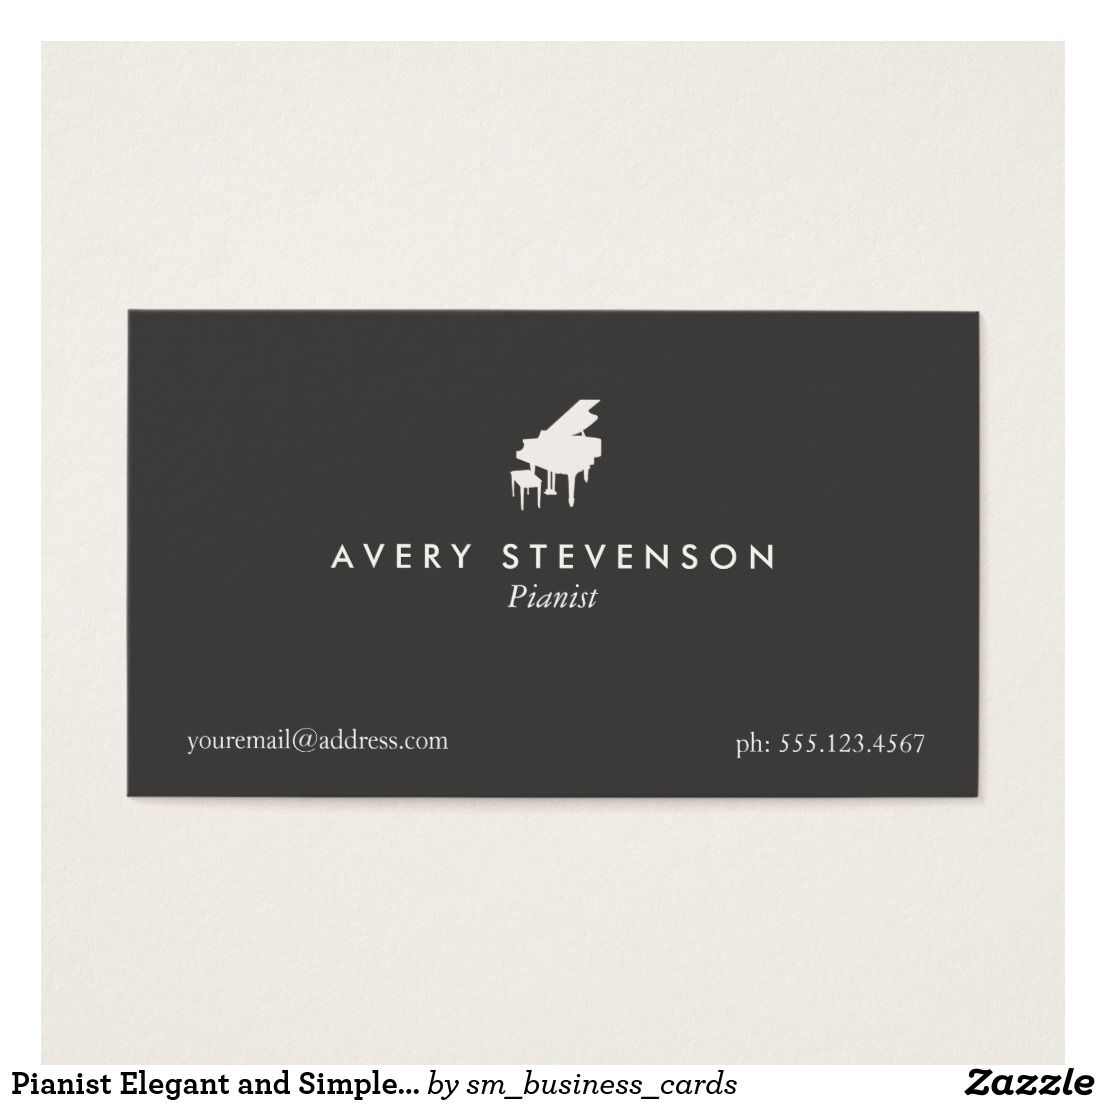 Pianist Elegant and Simple Black Piano Business Card   Pinterest